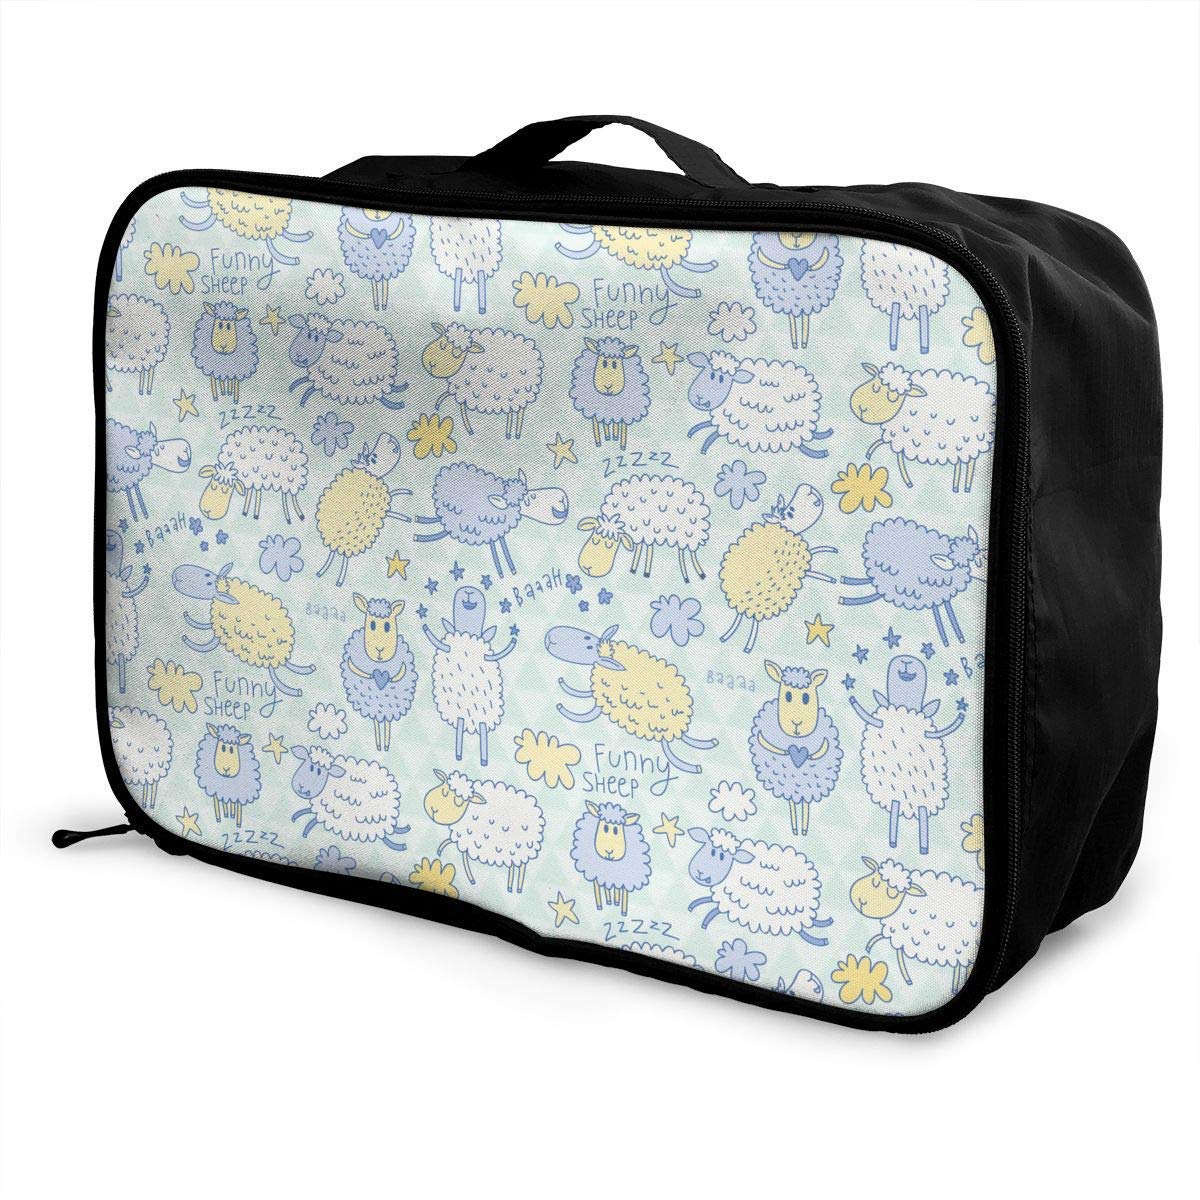 Portable Luggage Duffel Bag Funny Sheep Travel Bags Carry-on In Trolley Handle